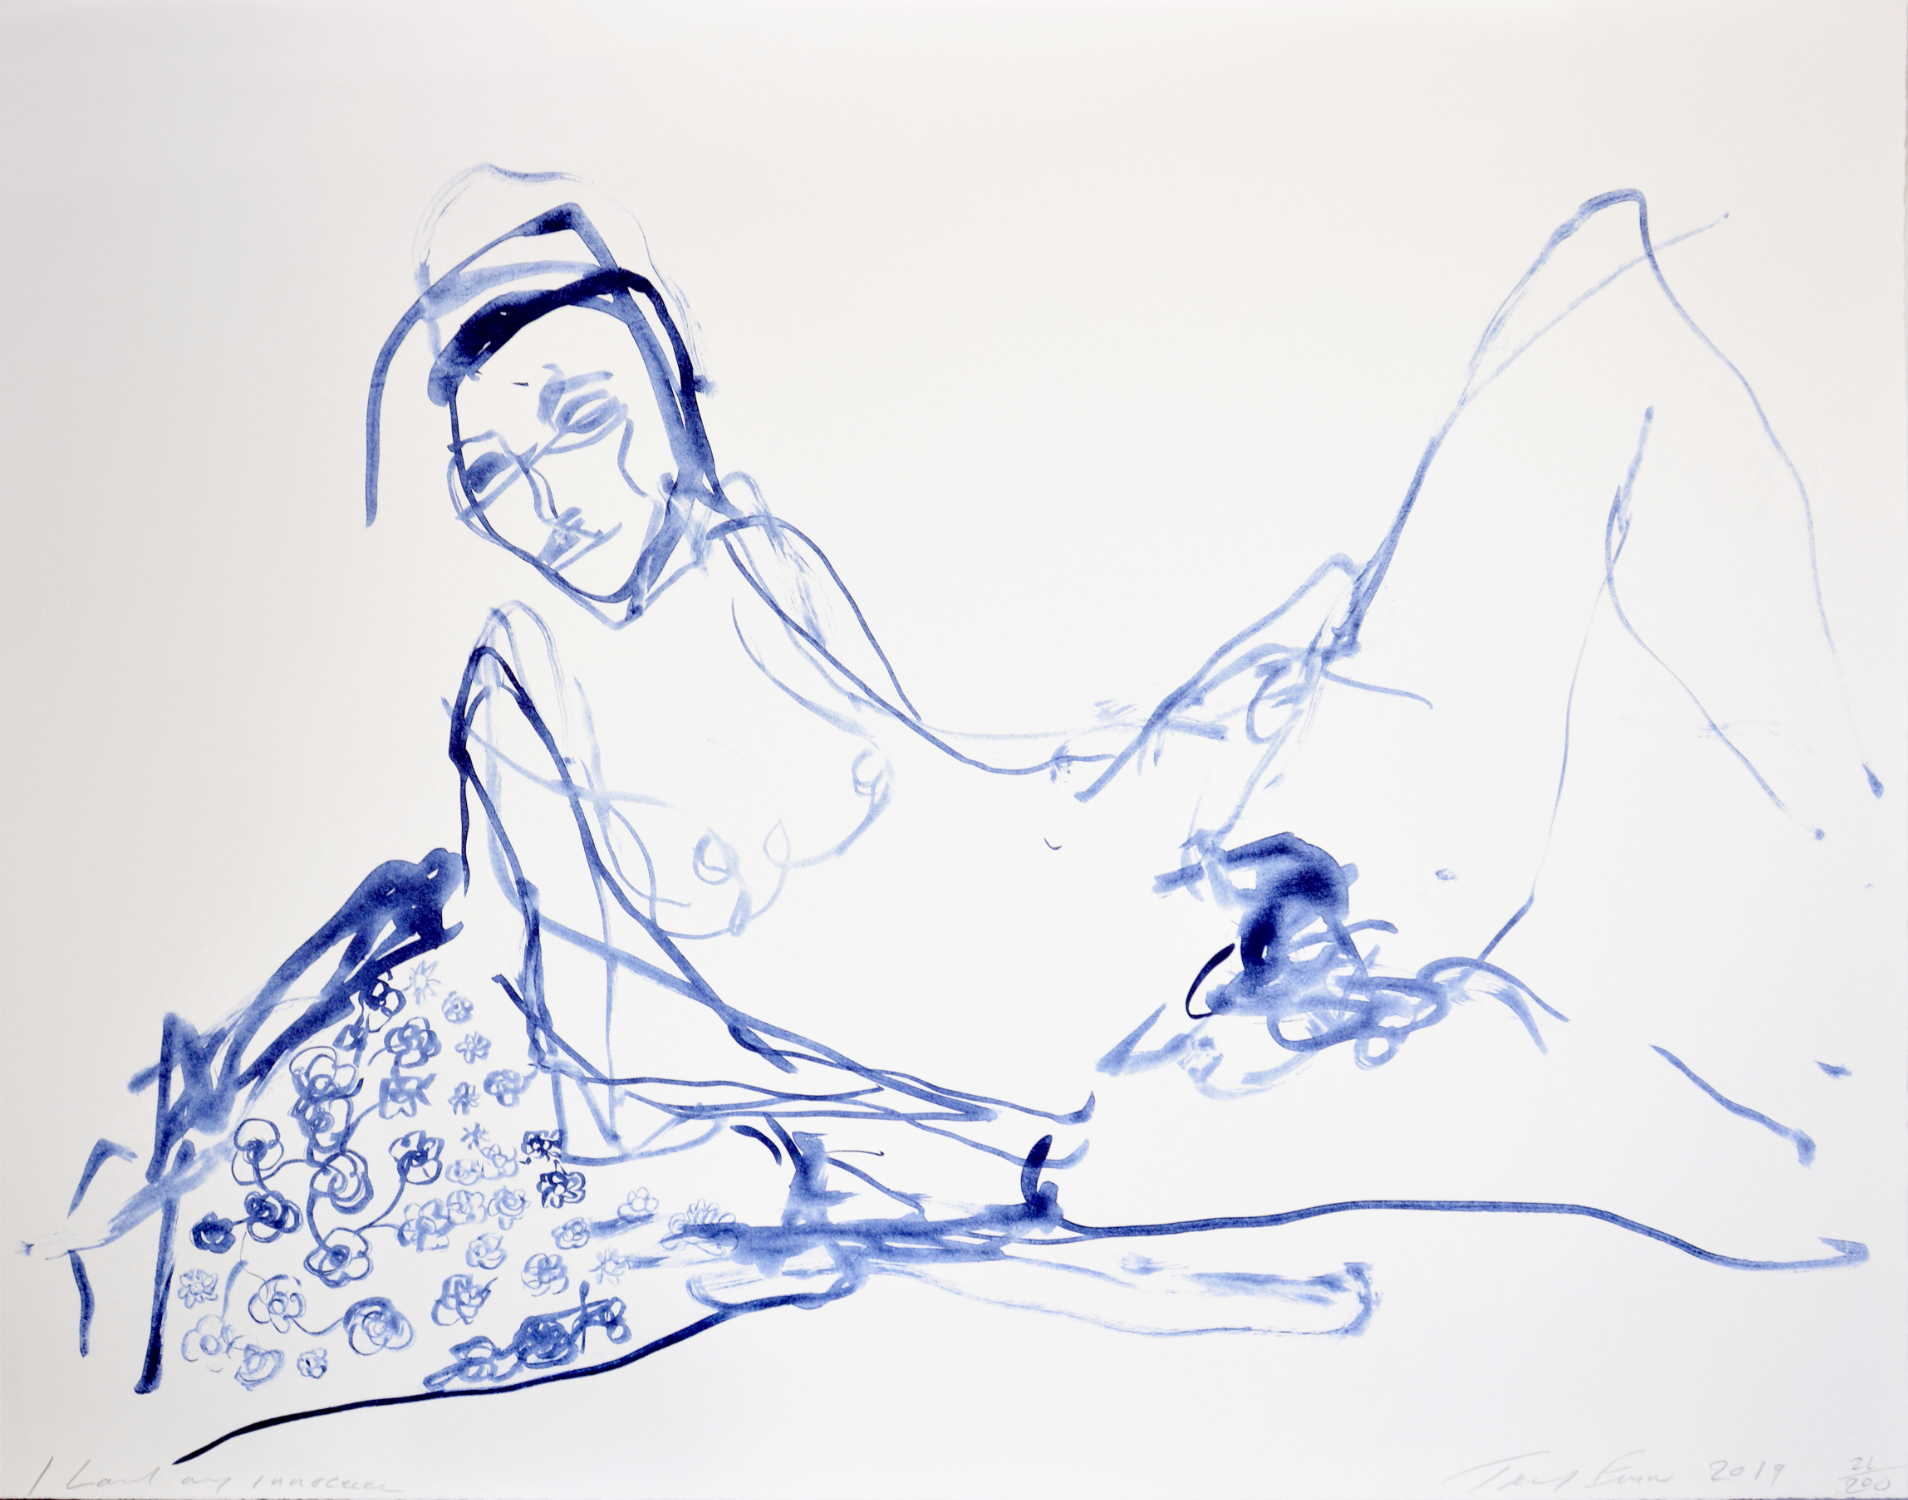 I Loved My Innocence by Tracey Emin